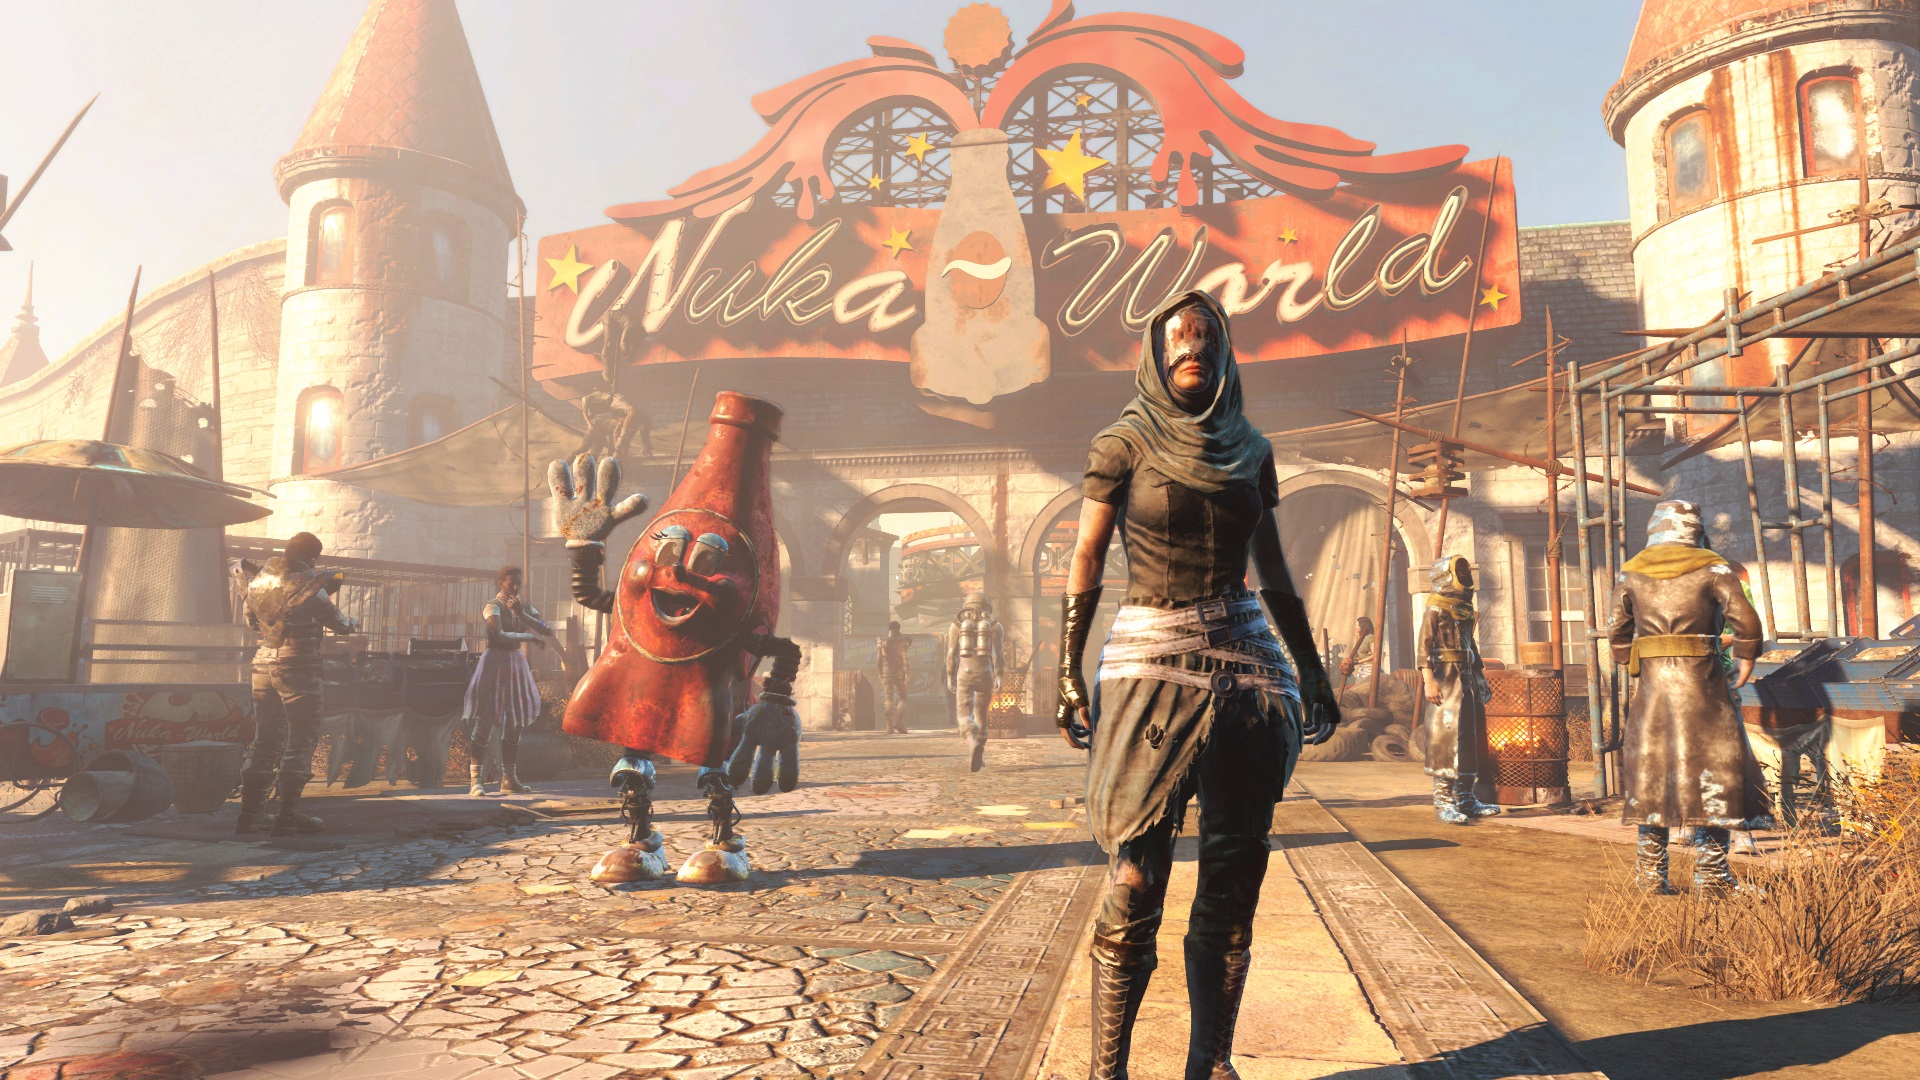 fallout 4 39 s final add on nuka world isn 39 t all fun and games. Black Bedroom Furniture Sets. Home Design Ideas